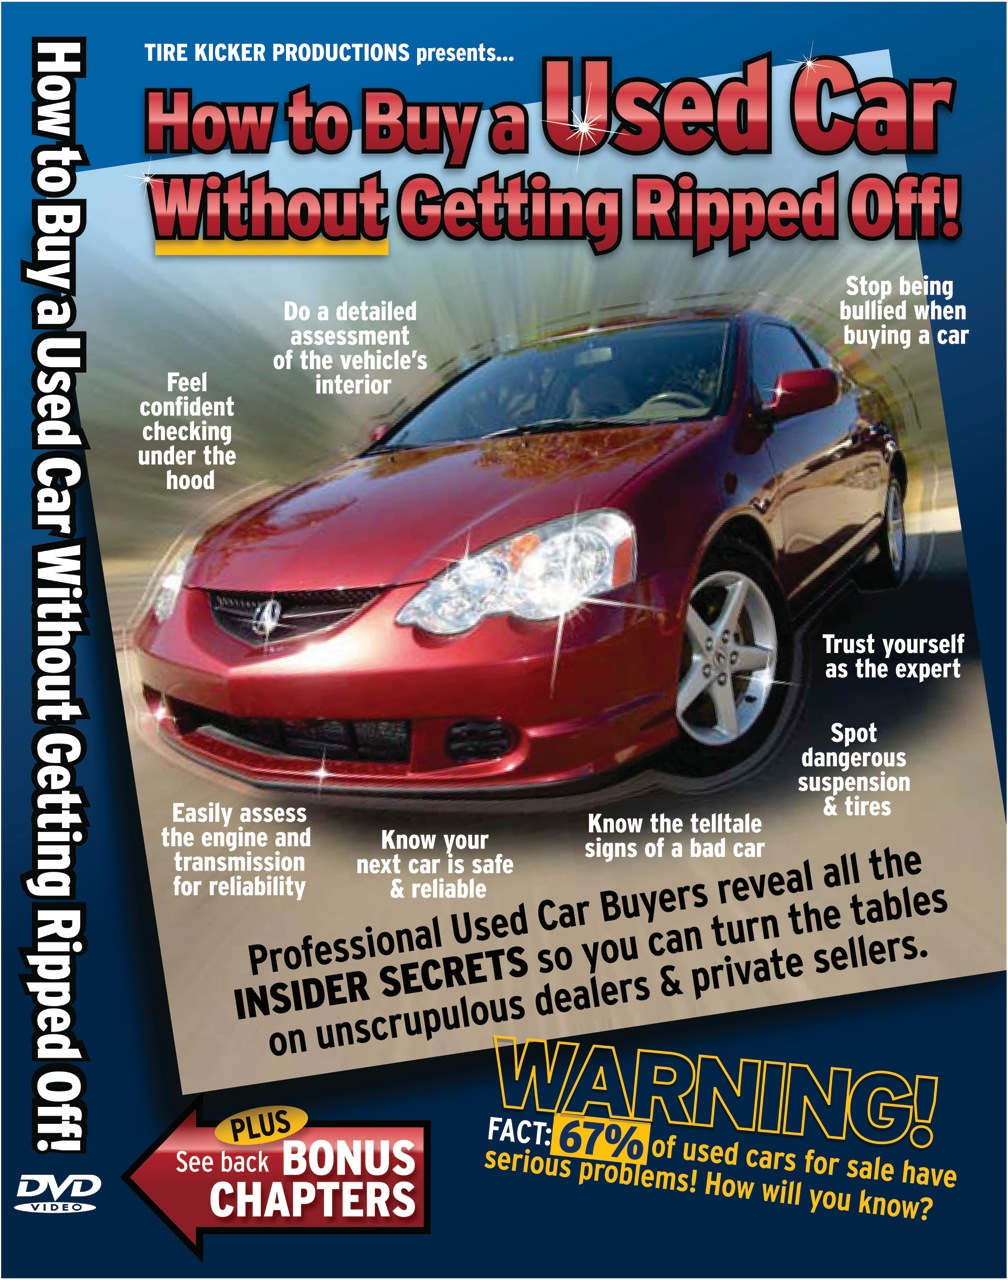 How to Buy a Used Car Without Getting Ripped Off!